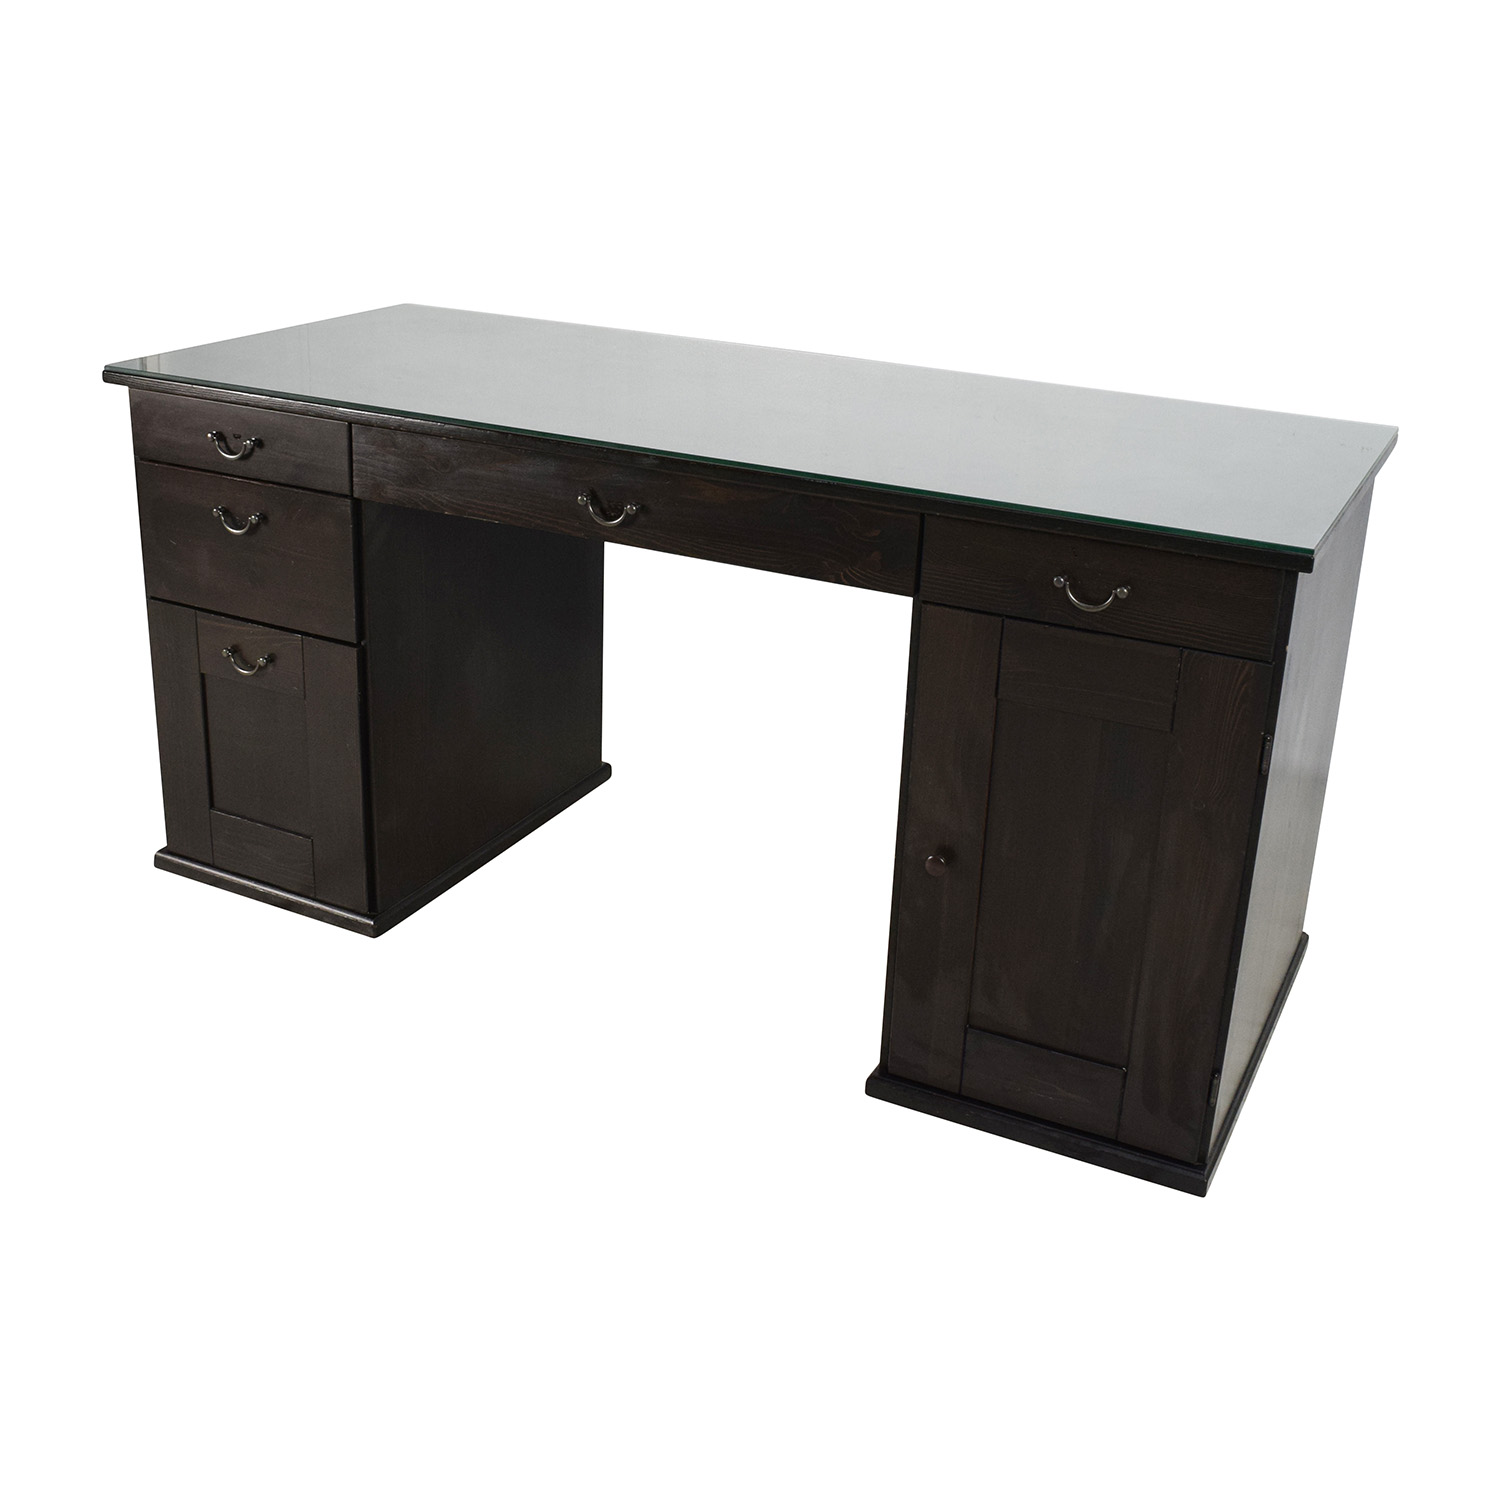 table bureau ikea table bureau ikea hilver table ikea linnmon finnvard adils linnmon table. Black Bedroom Furniture Sets. Home Design Ideas